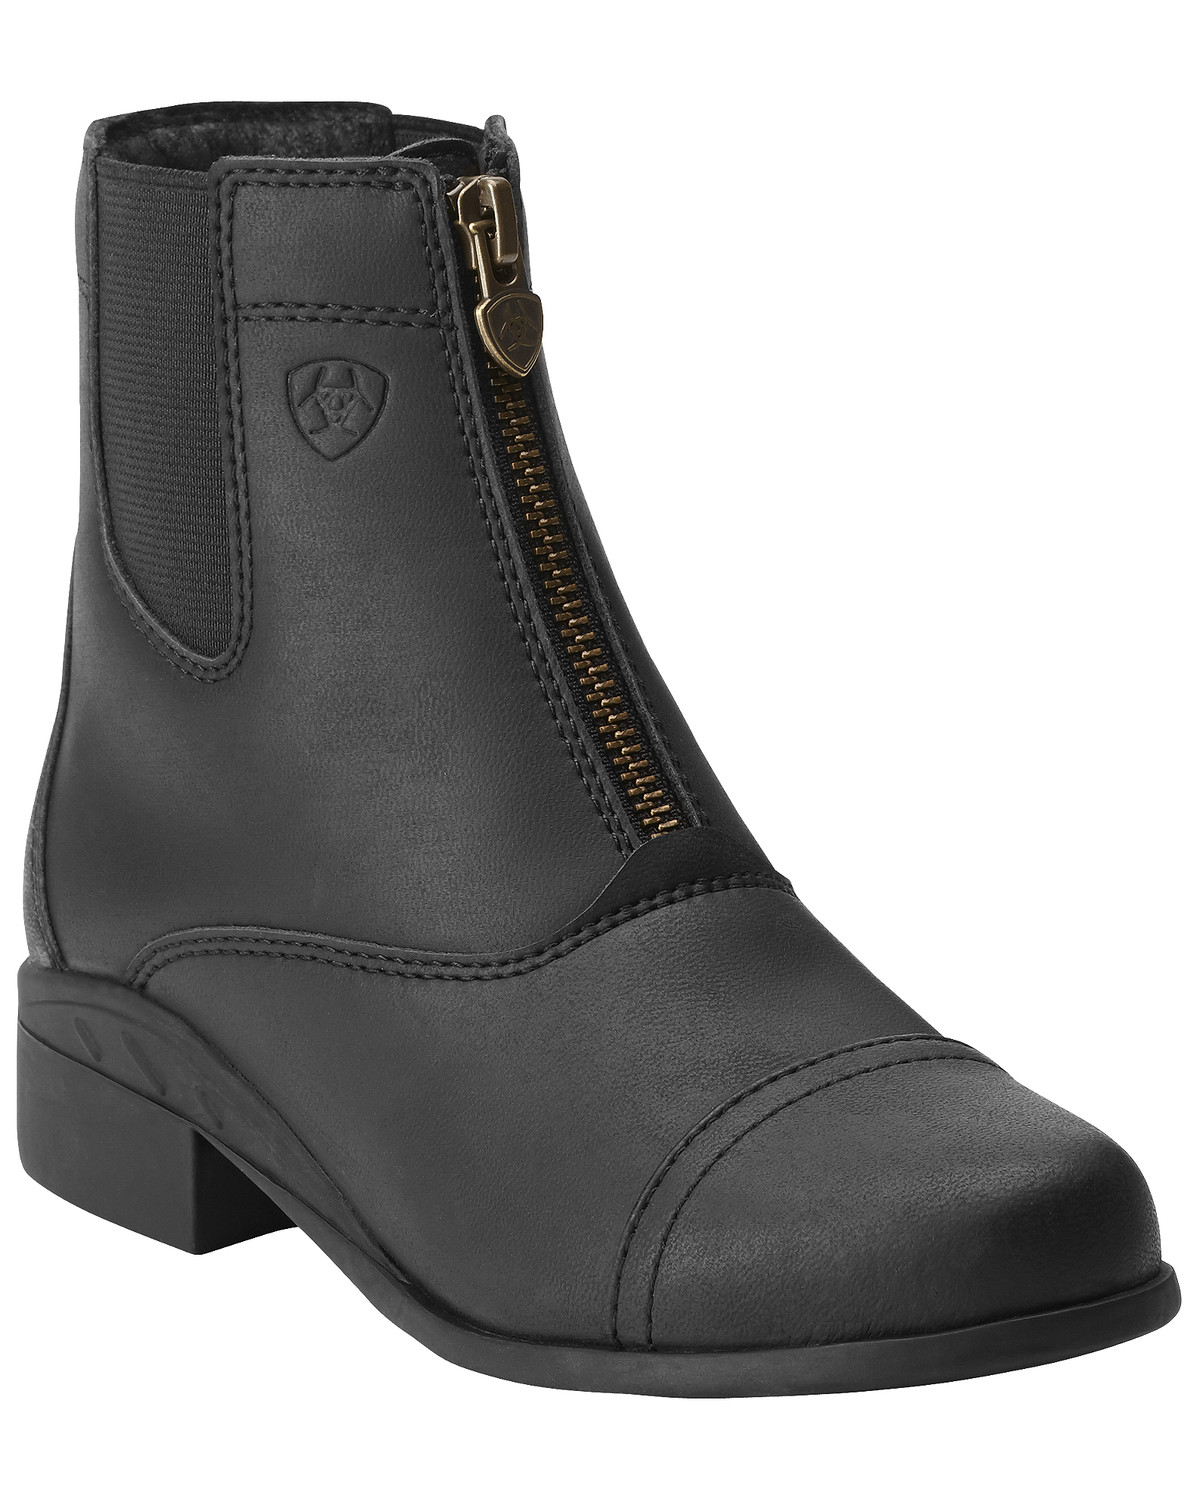 Ariat Kids Scout Zip Paddock Riding Boots Sheplers